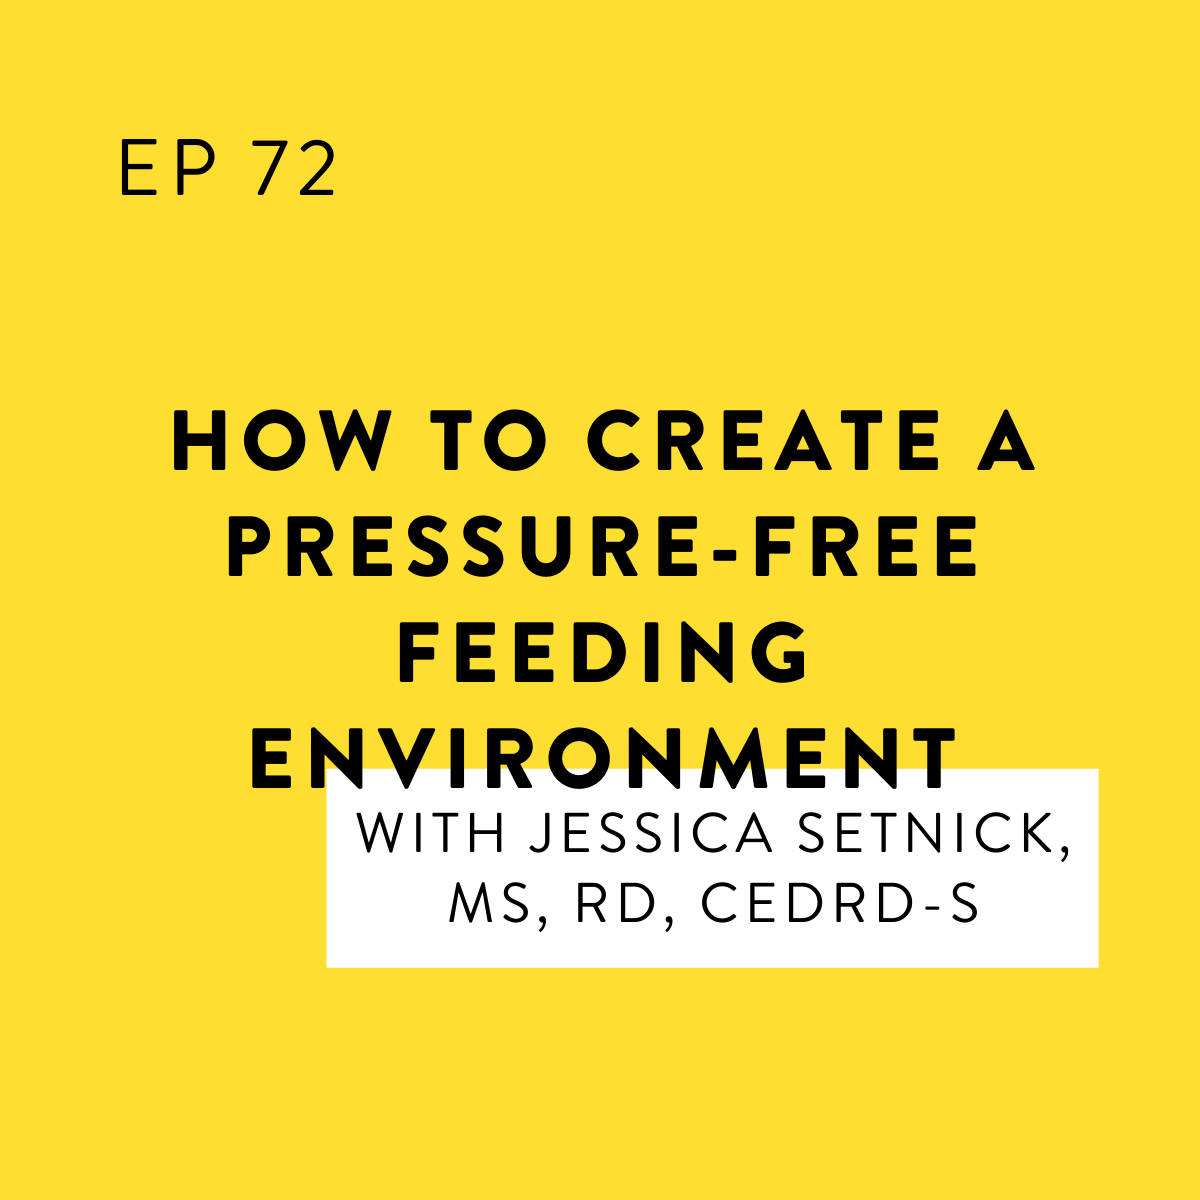 How to Create a Pressure-Free Feeding Environment with Jessica Setnick, MS, RD, CEDRD-S